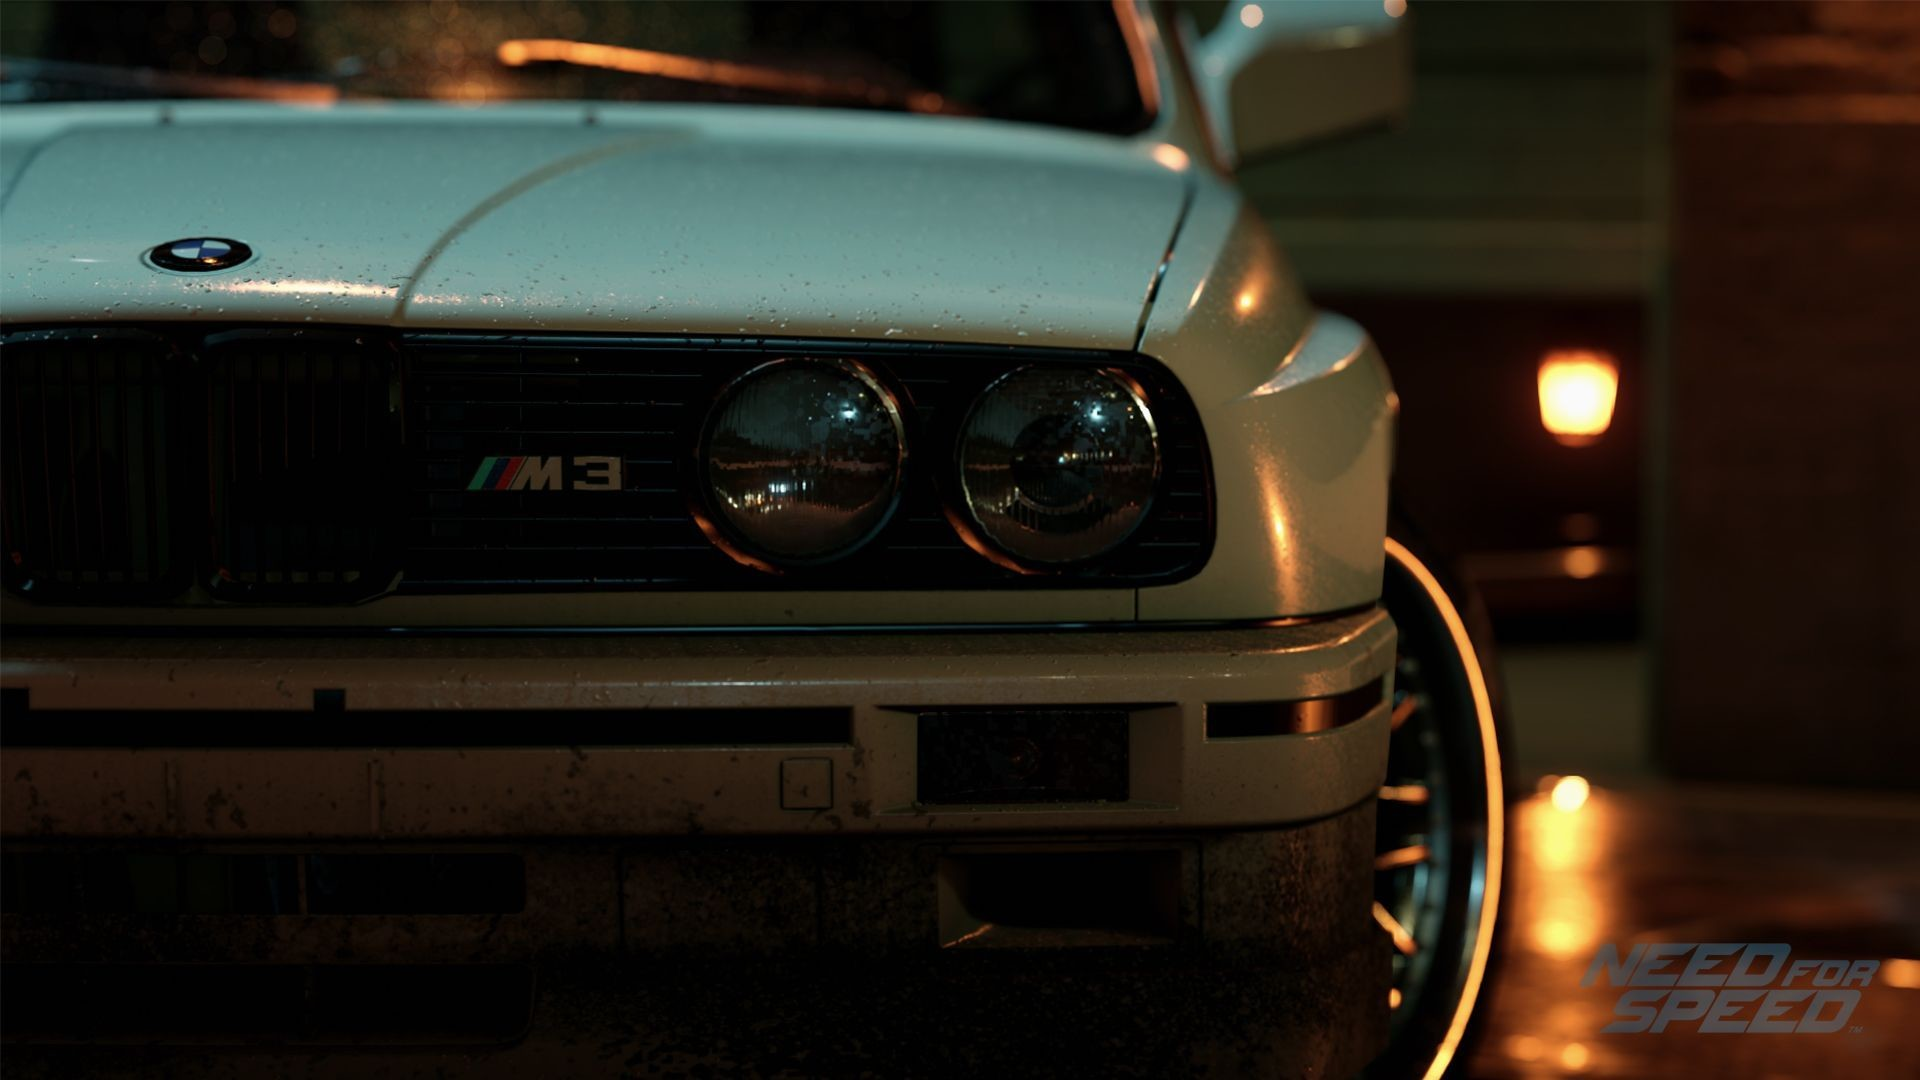 1920x1080 BMW E30 Wallpaper 20  768x432